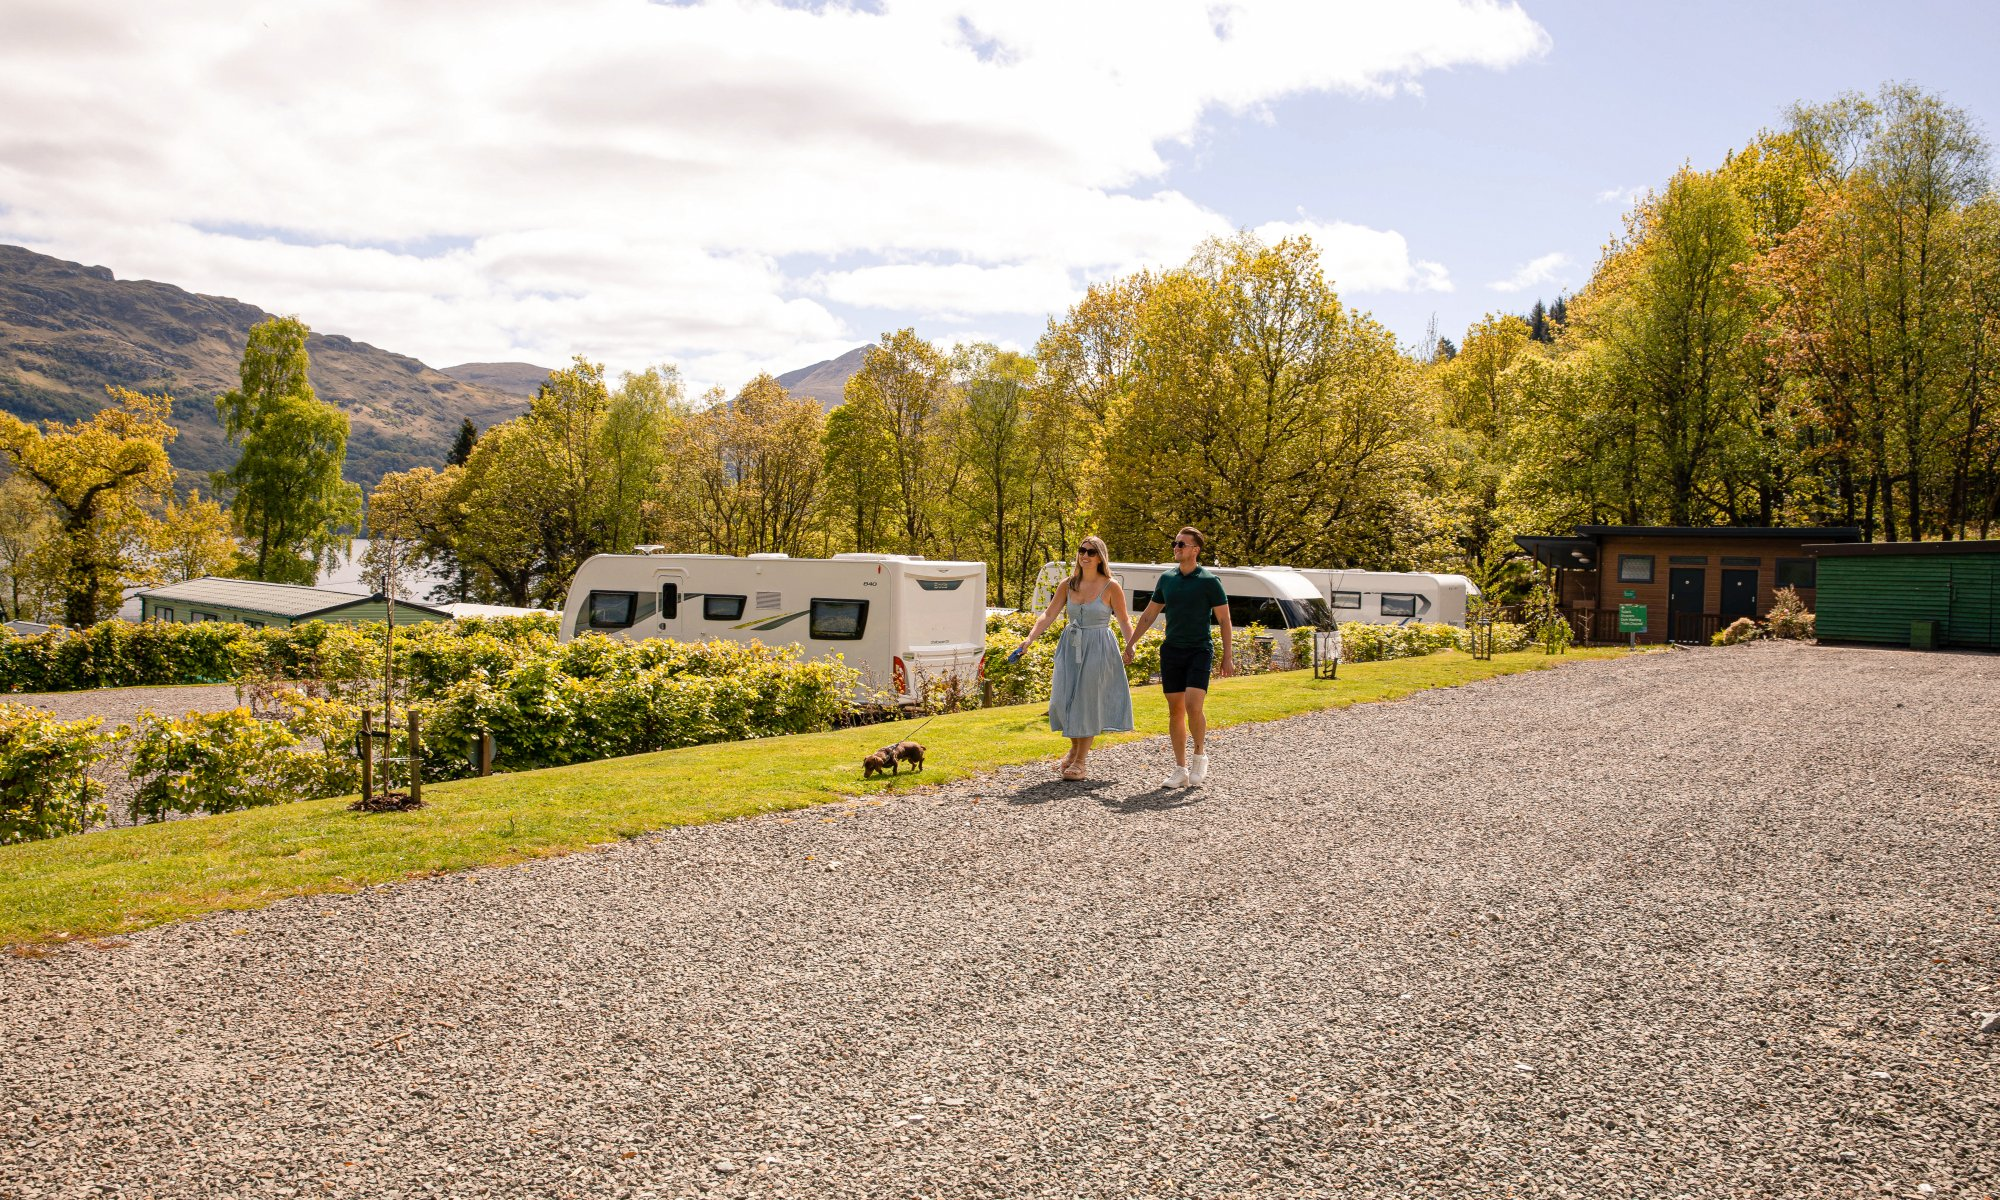 Touring Pitches at Loch Lomond Holiday Park Scotland